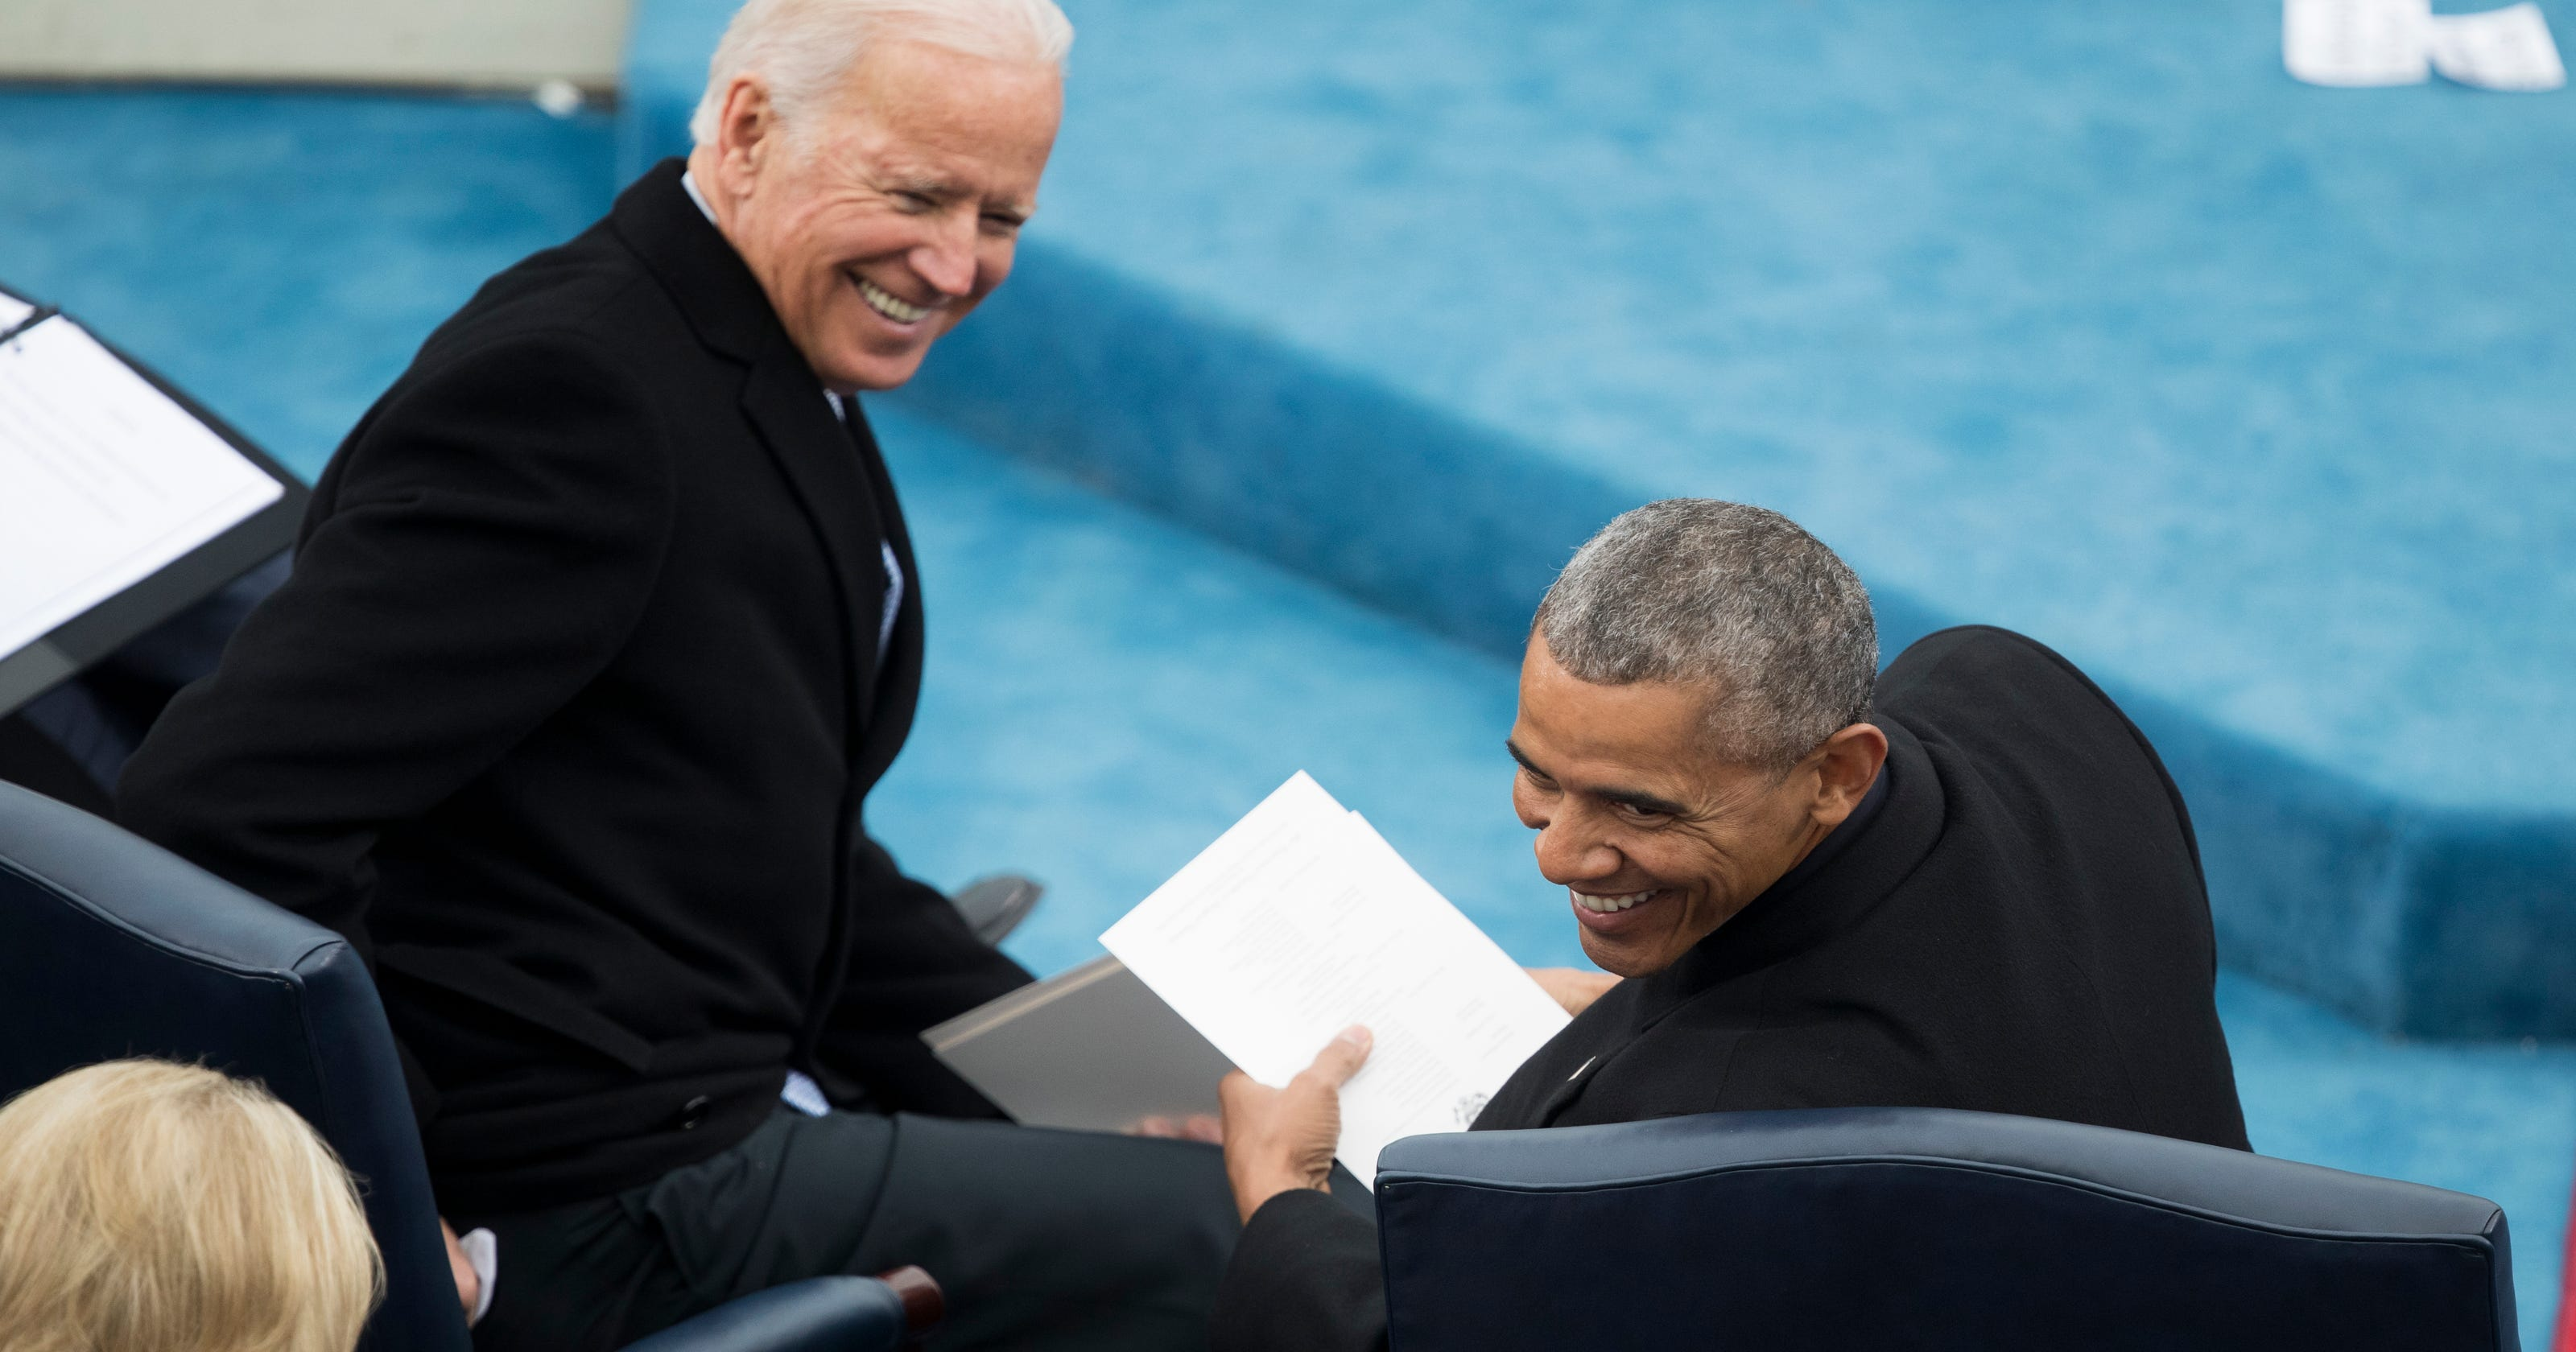 Joe Biden Wishes Barack Obama A Happy Birthday